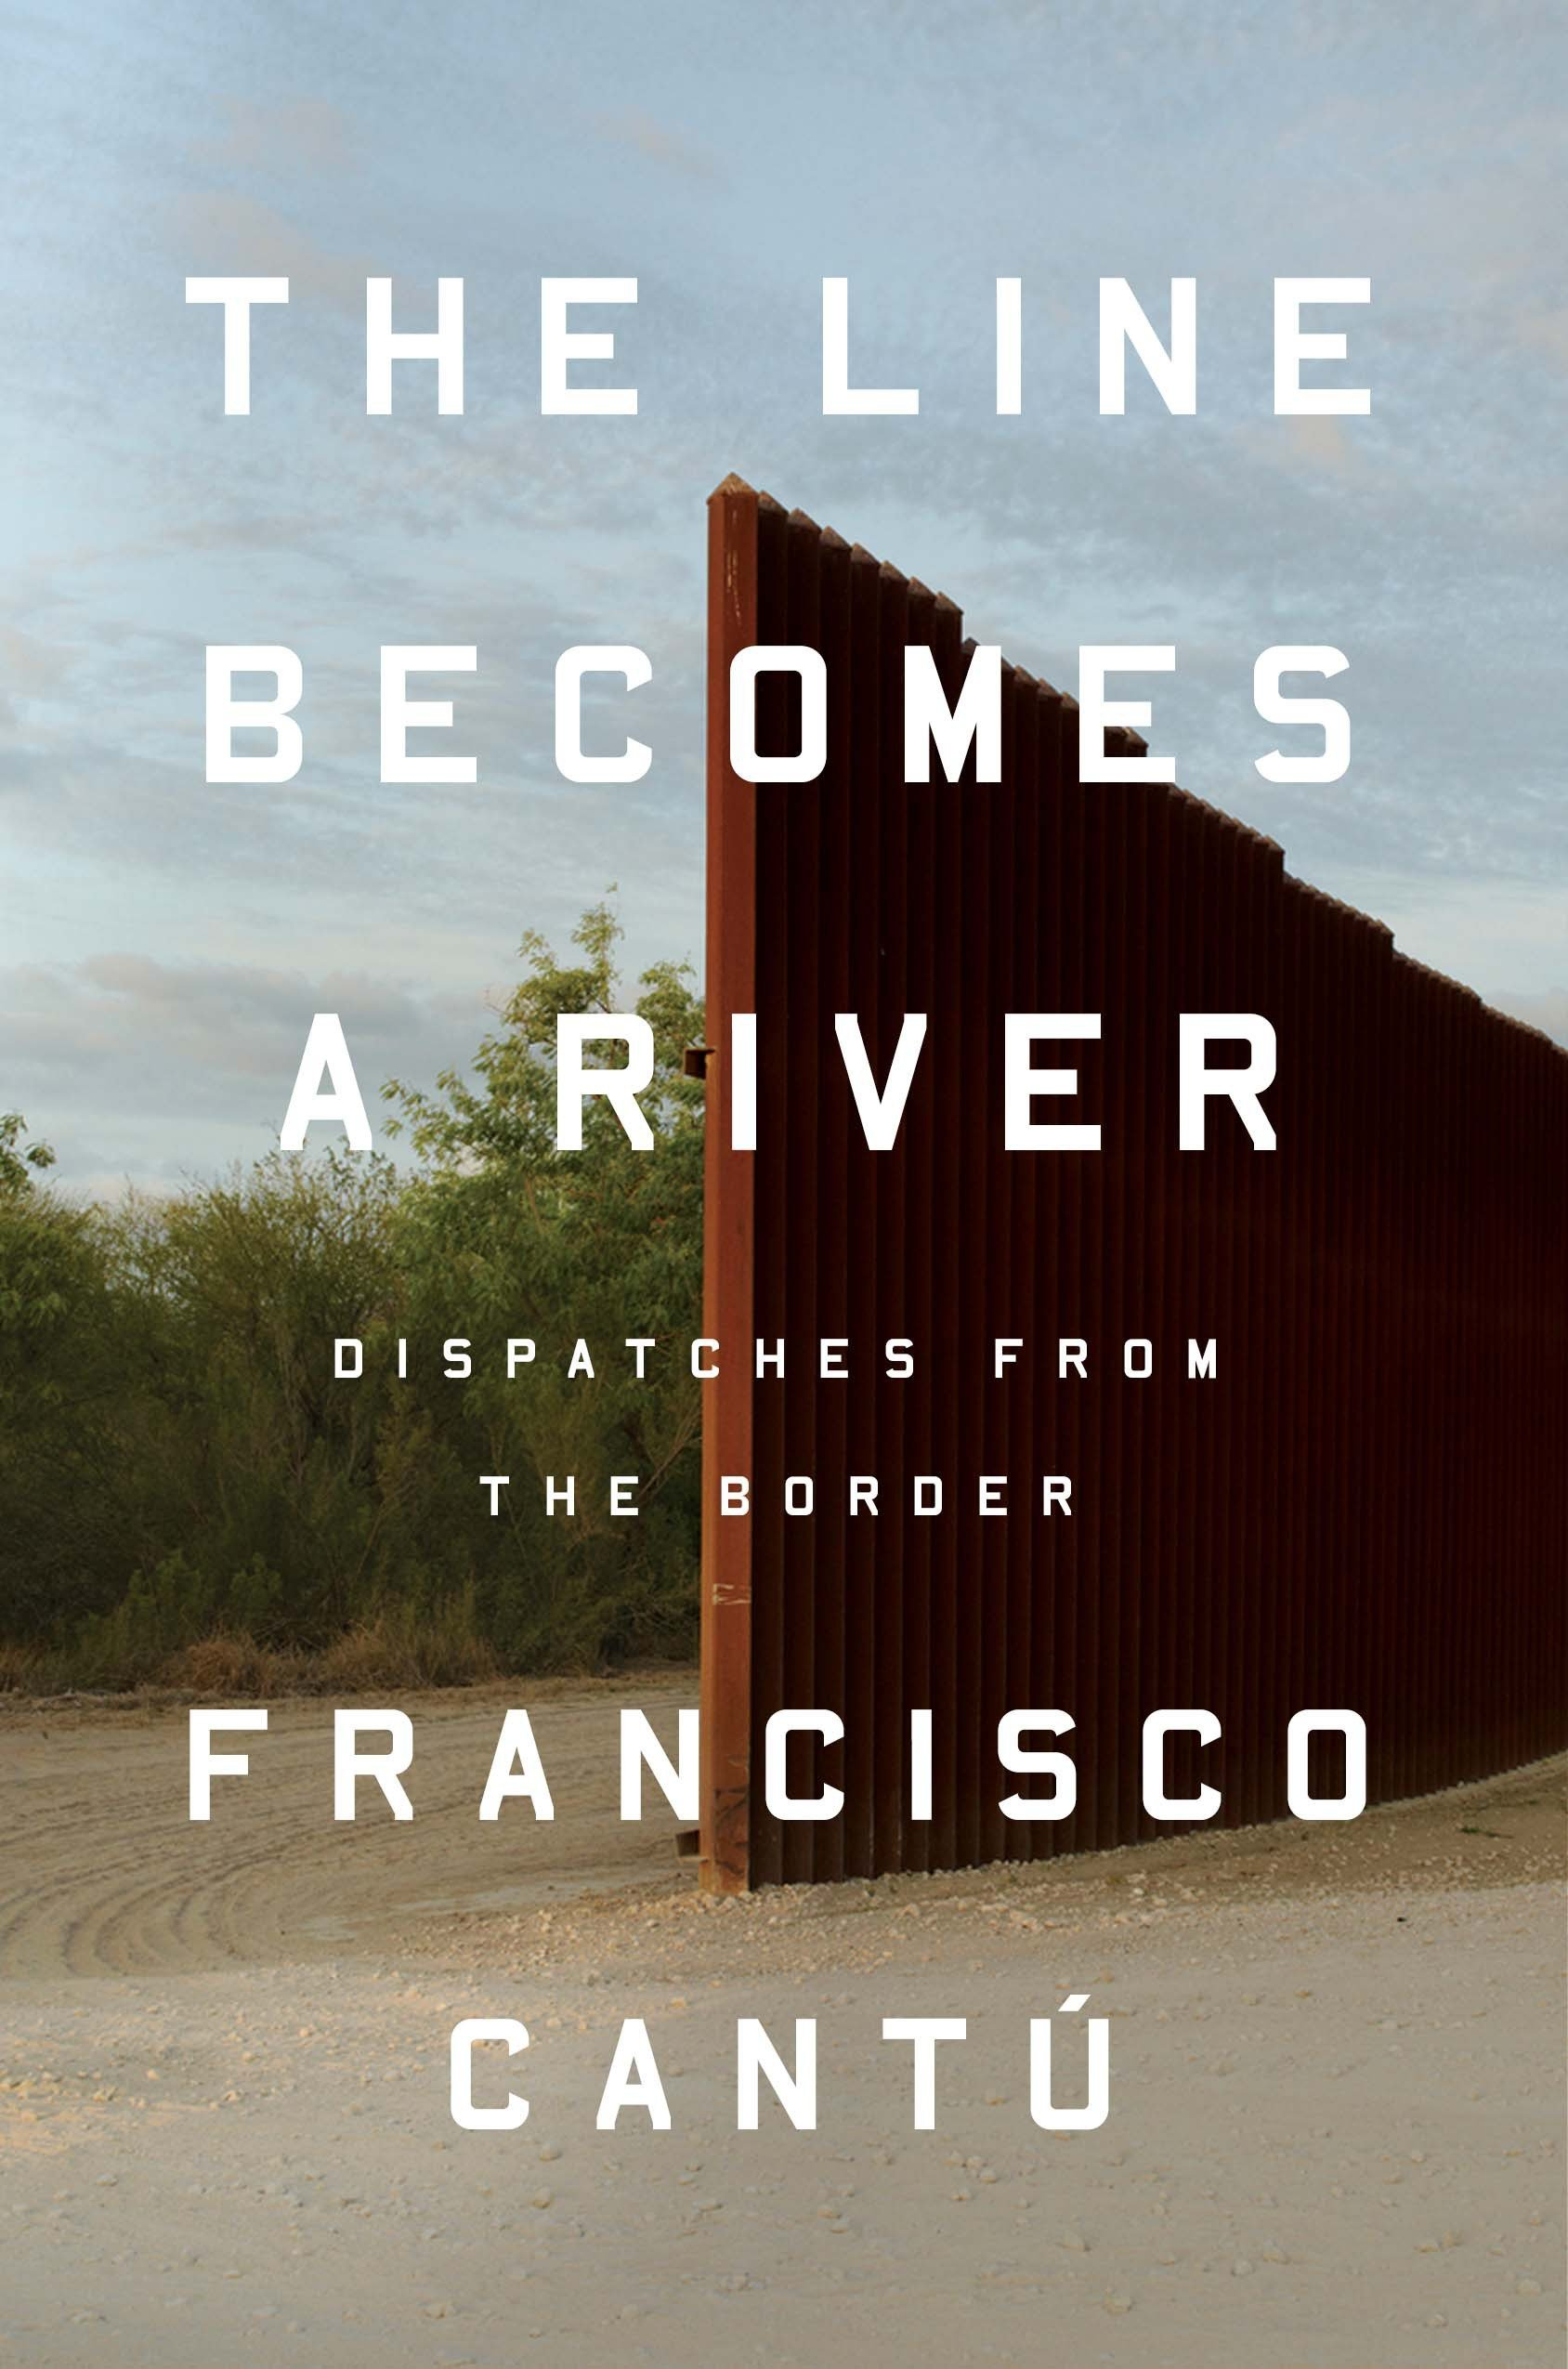 For Francisco Cantú, the border is in the blood: his mother, a park ranger and daughter of a Mexican immigrant, raised him in the scrublands of the Southwest. Haunted by the landscape of his youth, Cantú joins the Border Patrol. He and his partners are posted to remote regions crisscrossed by drug routes and smuggling corridors, where they learn to track other humans under blistering sun and through frigid nights. They haul in the dead and deliver to detention those they find alive. Cantú tries not to think where the stories go from there.  Plagued by nightmares, he abandons the Patrol for civilian life. But when an immigrant friend travels to Mexico to visit his dying mother and does not return, Cantú discovers that the border has migrated with him, and now he must know the whole story. Searing and unforgettable, The Line Becomes a River goes behind the headlines, making urgent and personal the violence our border wreaks on both sides of the line